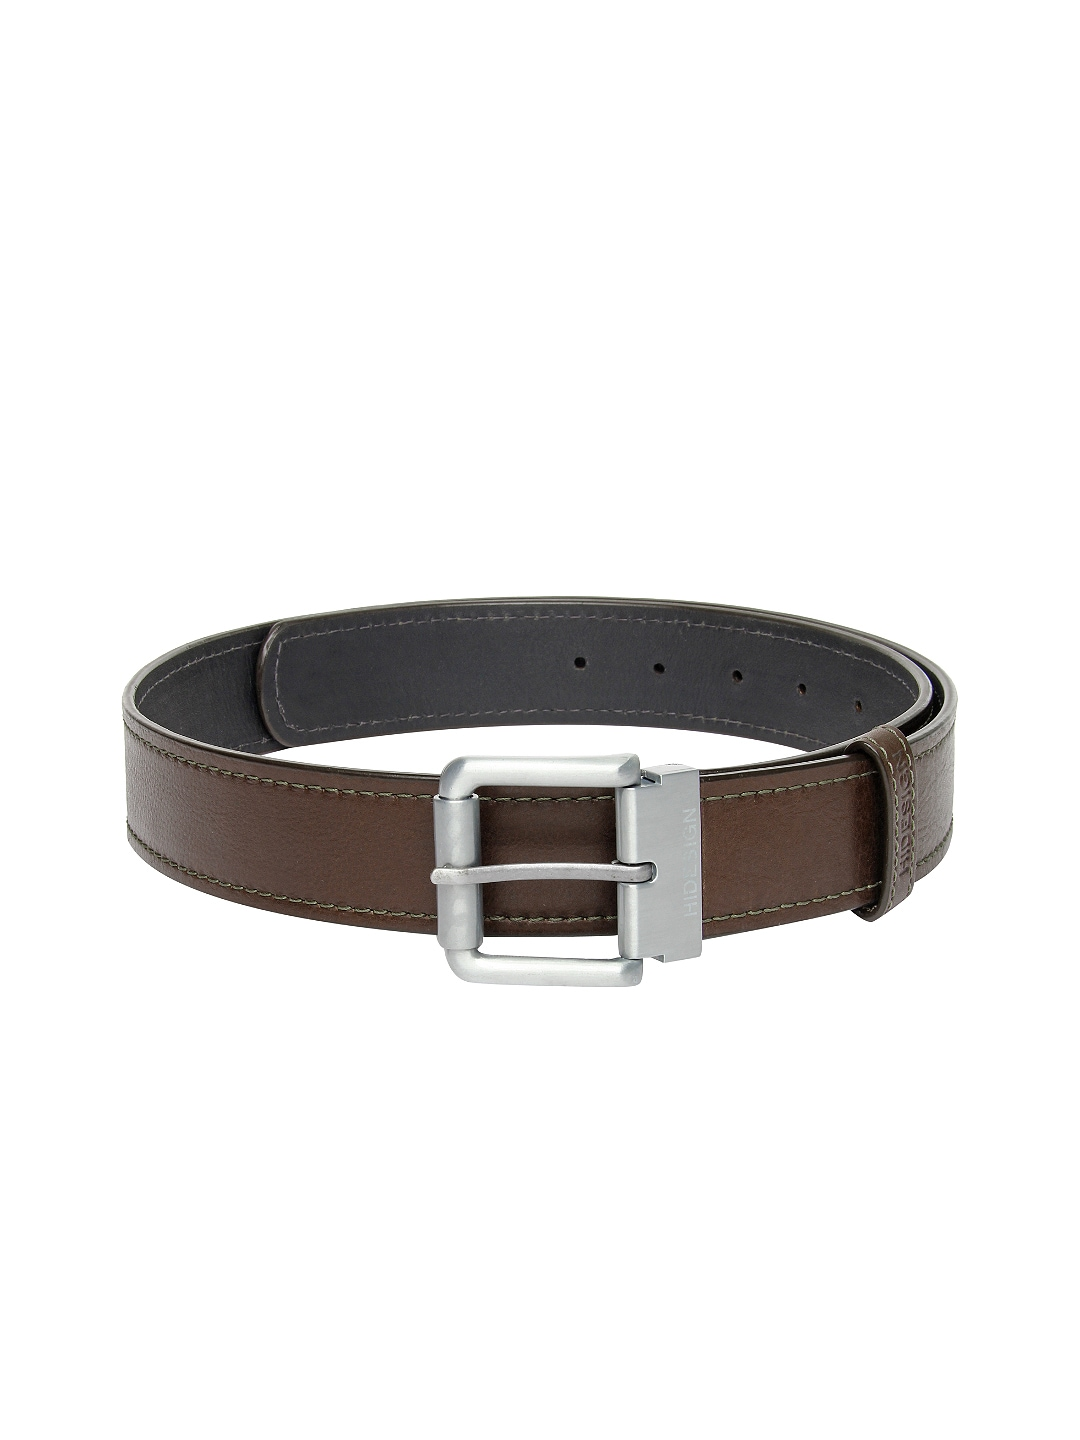 Myntra Hidesign Men Brown & Black Reversible Leather Belt ...